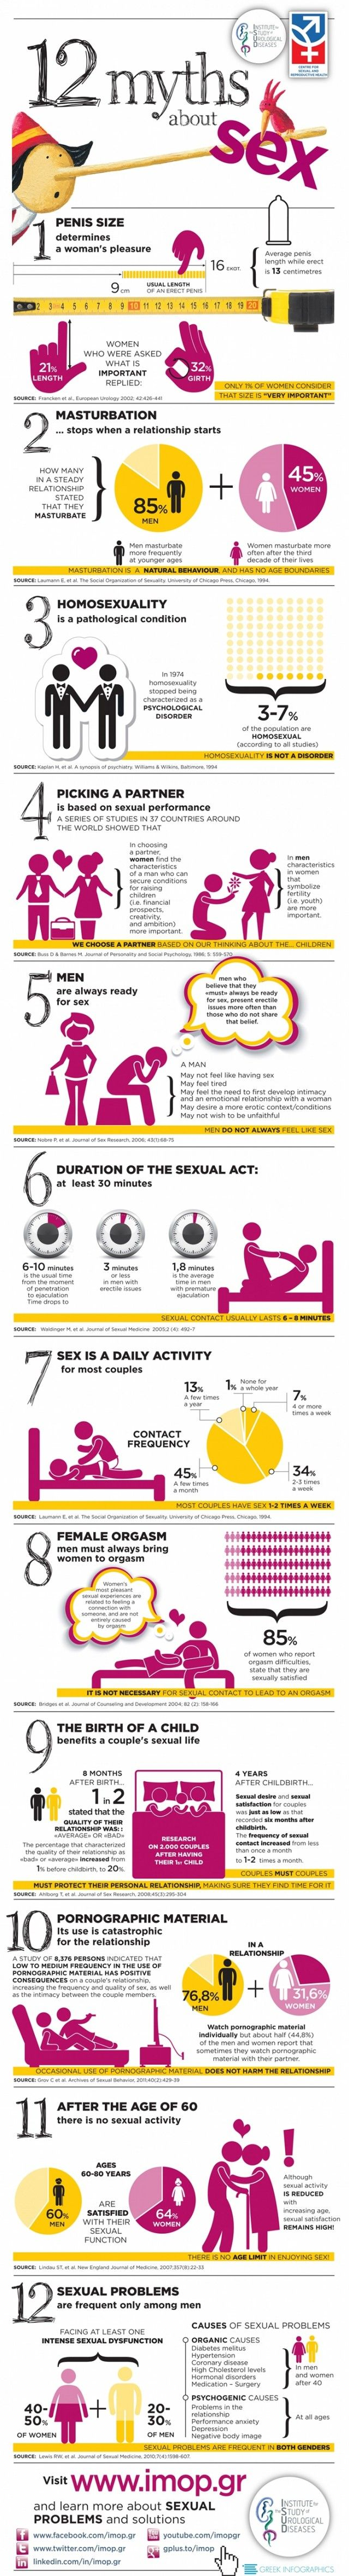 12 Myths About Sex [infographic]